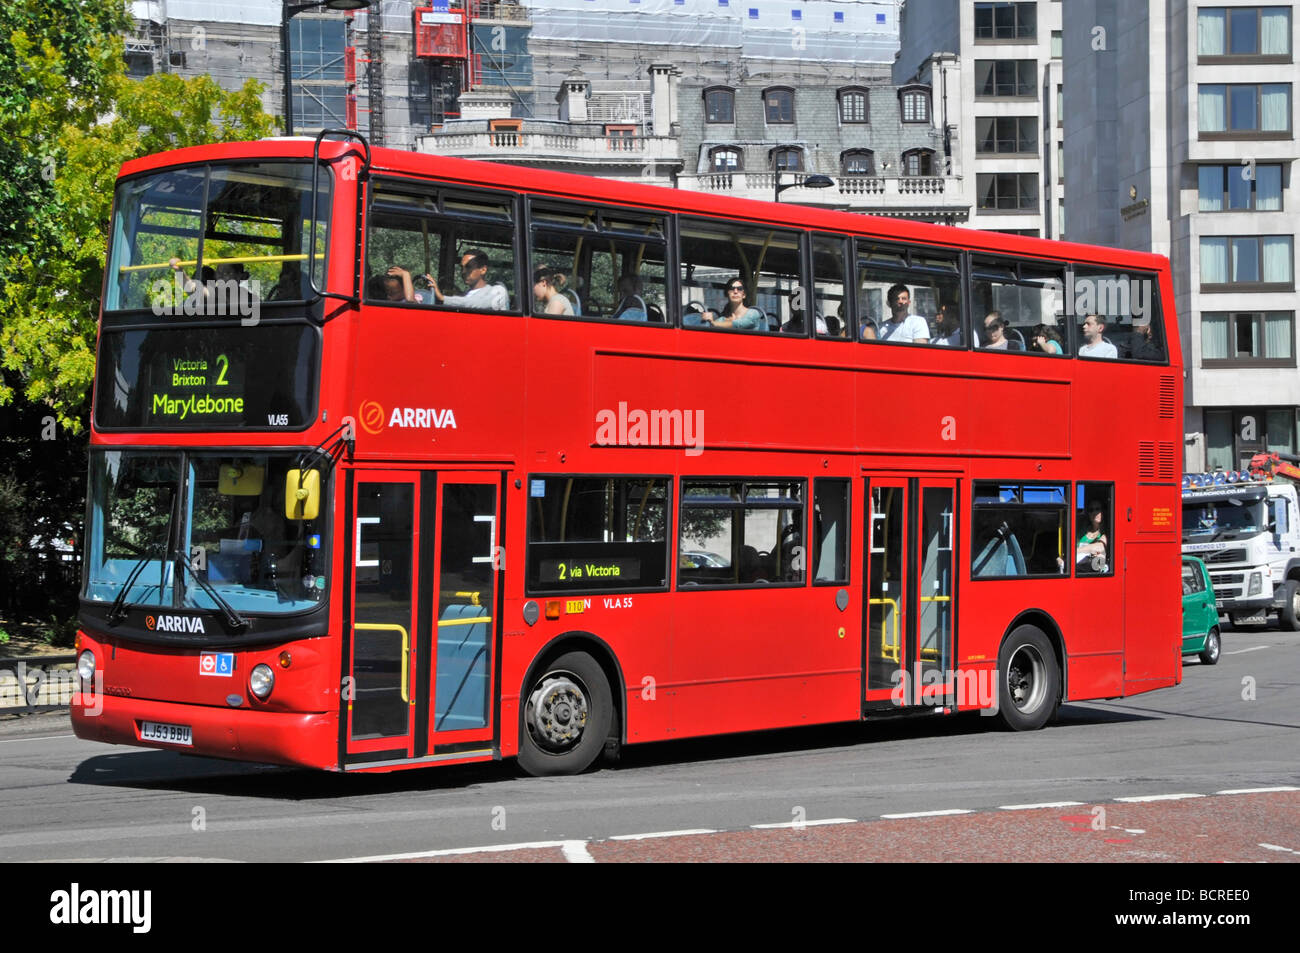 London red bus route number 2 operated by Arriva no advertising - Stock Image